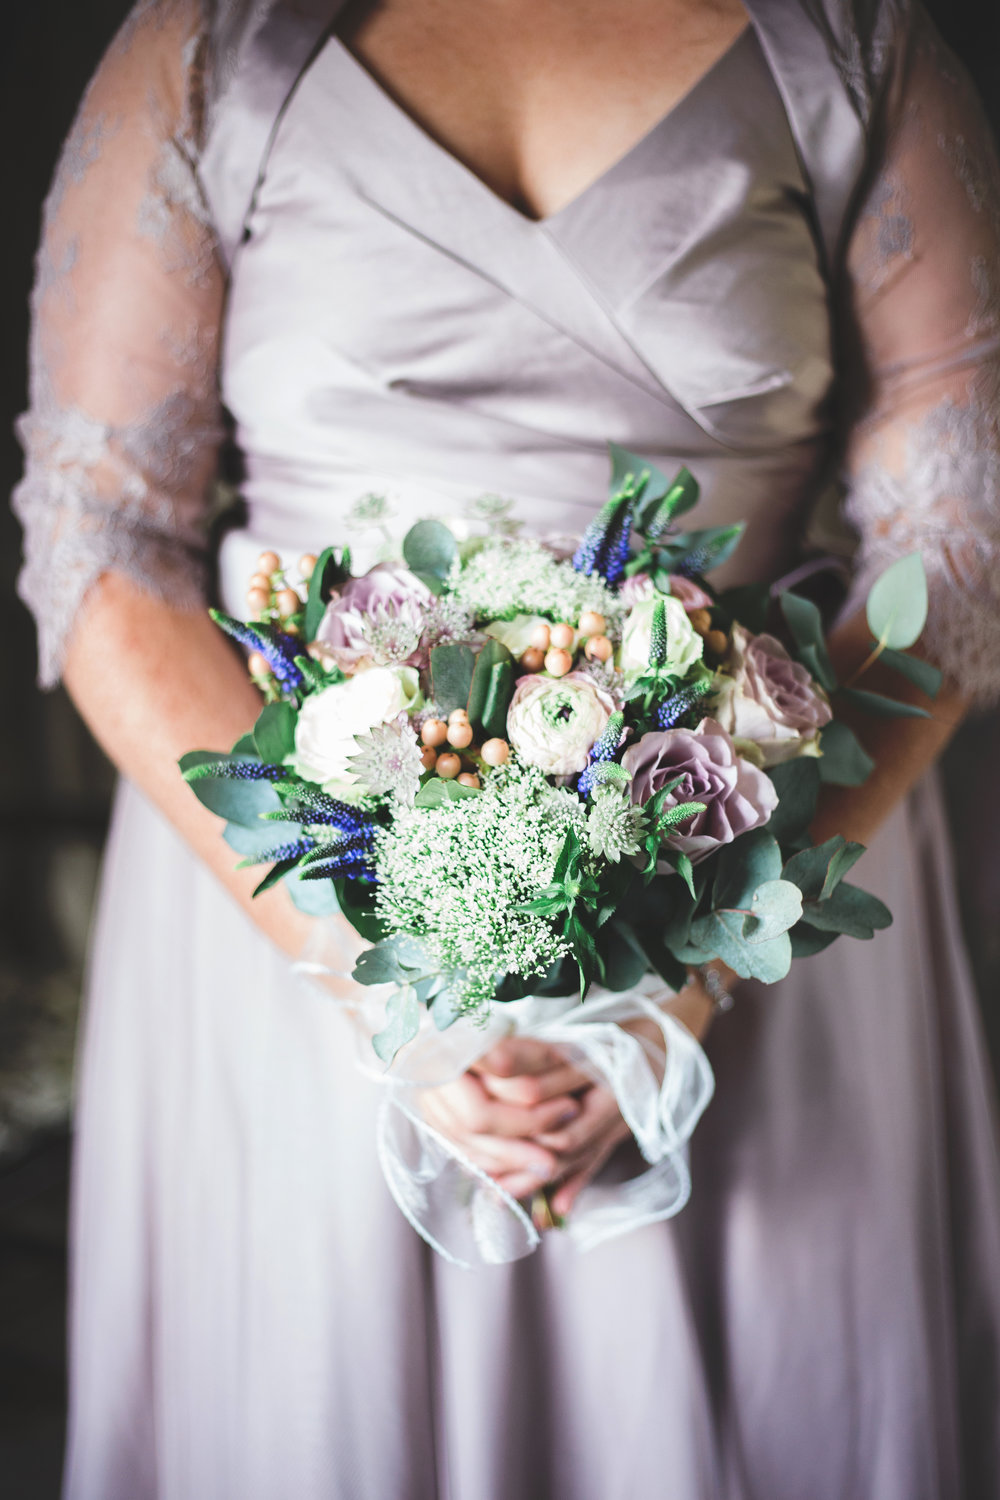 The bridesmaid dress featuring the flower bouquet- Vintage themed wedding